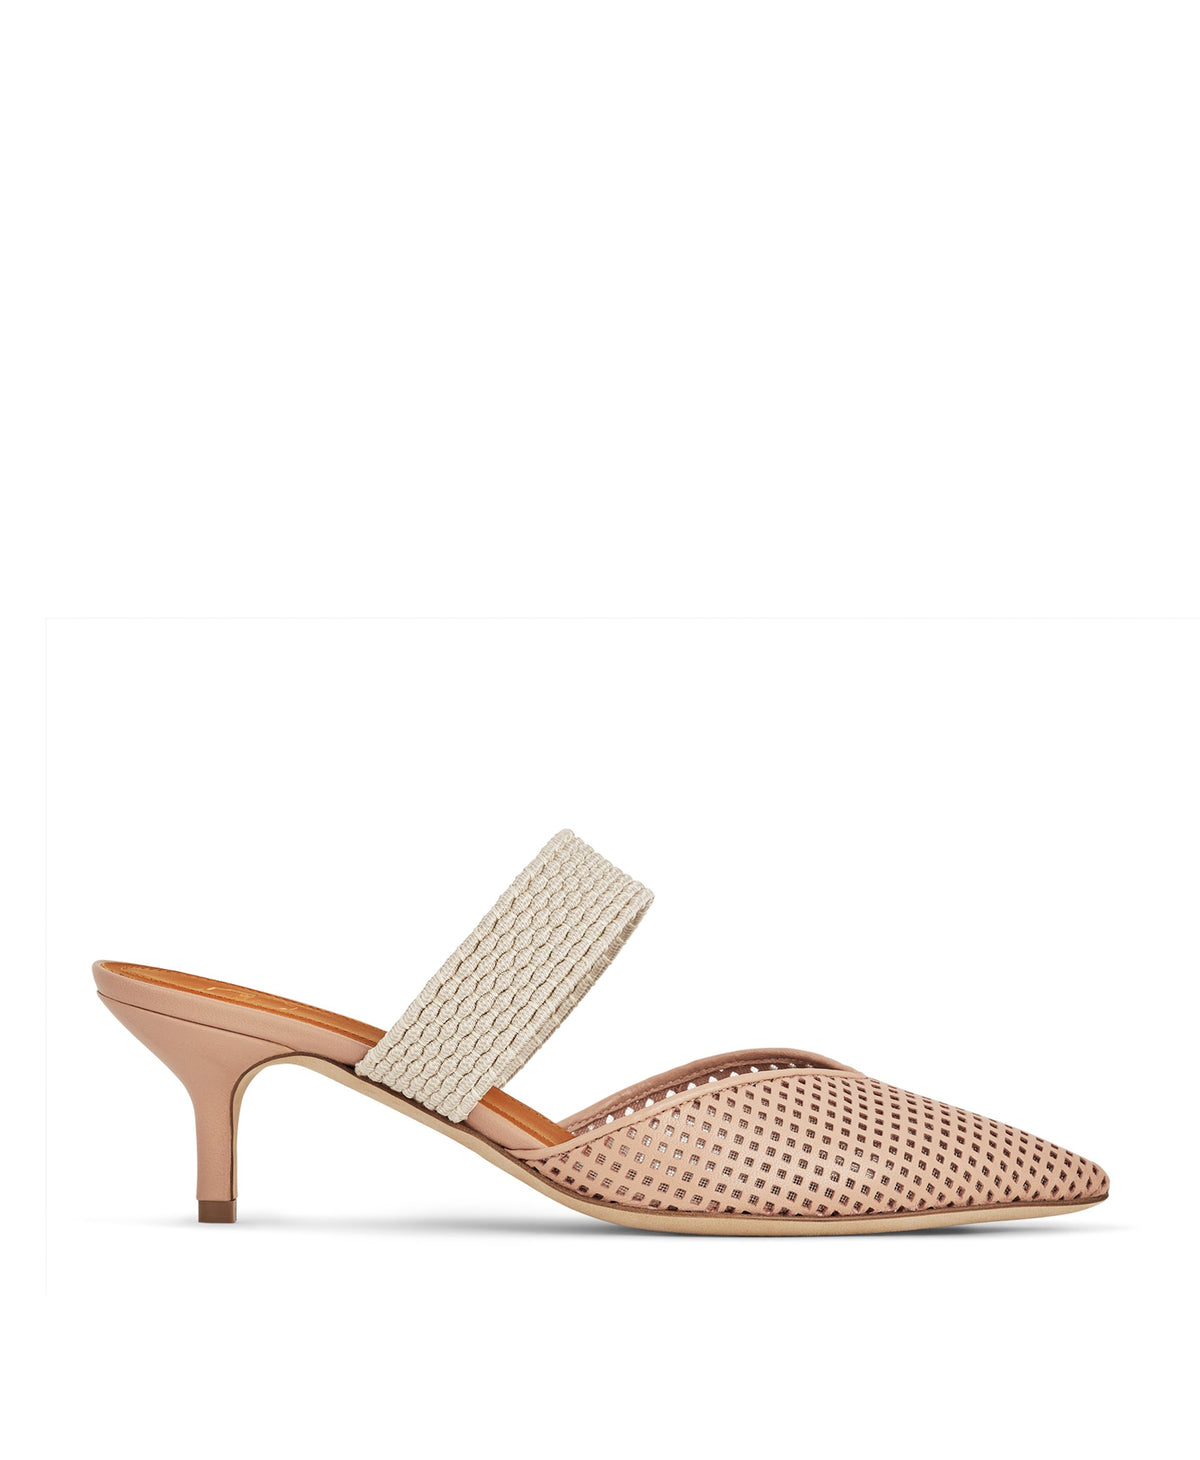 Maisie 45mm - Peach Mesh